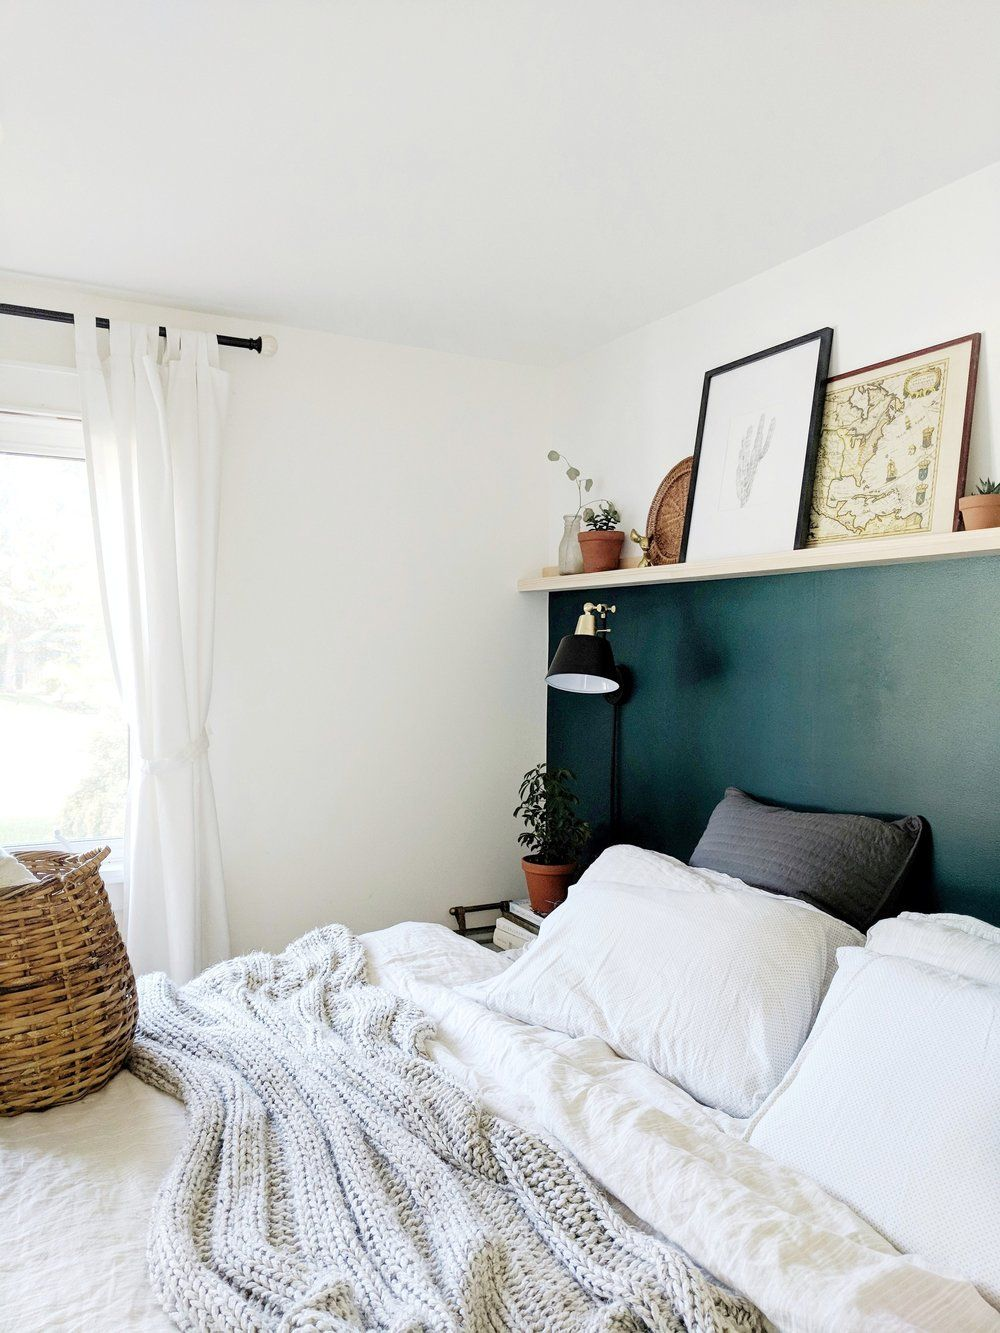 Photo of MASTER BEDROOM | WALL TO WALL PICTURE LEDGE — k i r s t e n d i a n e